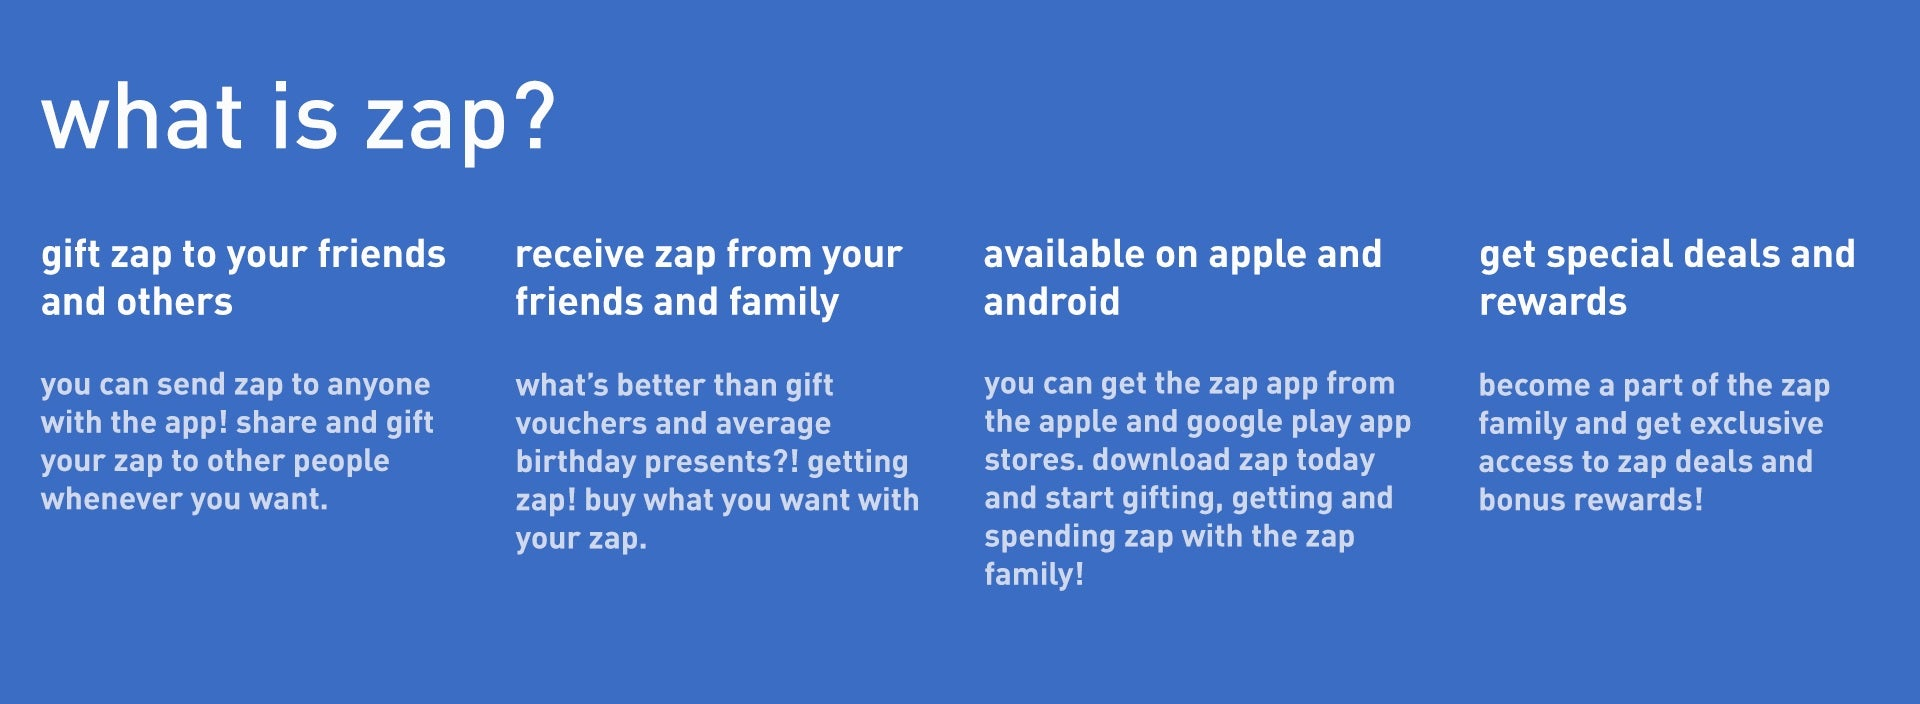 What is zap